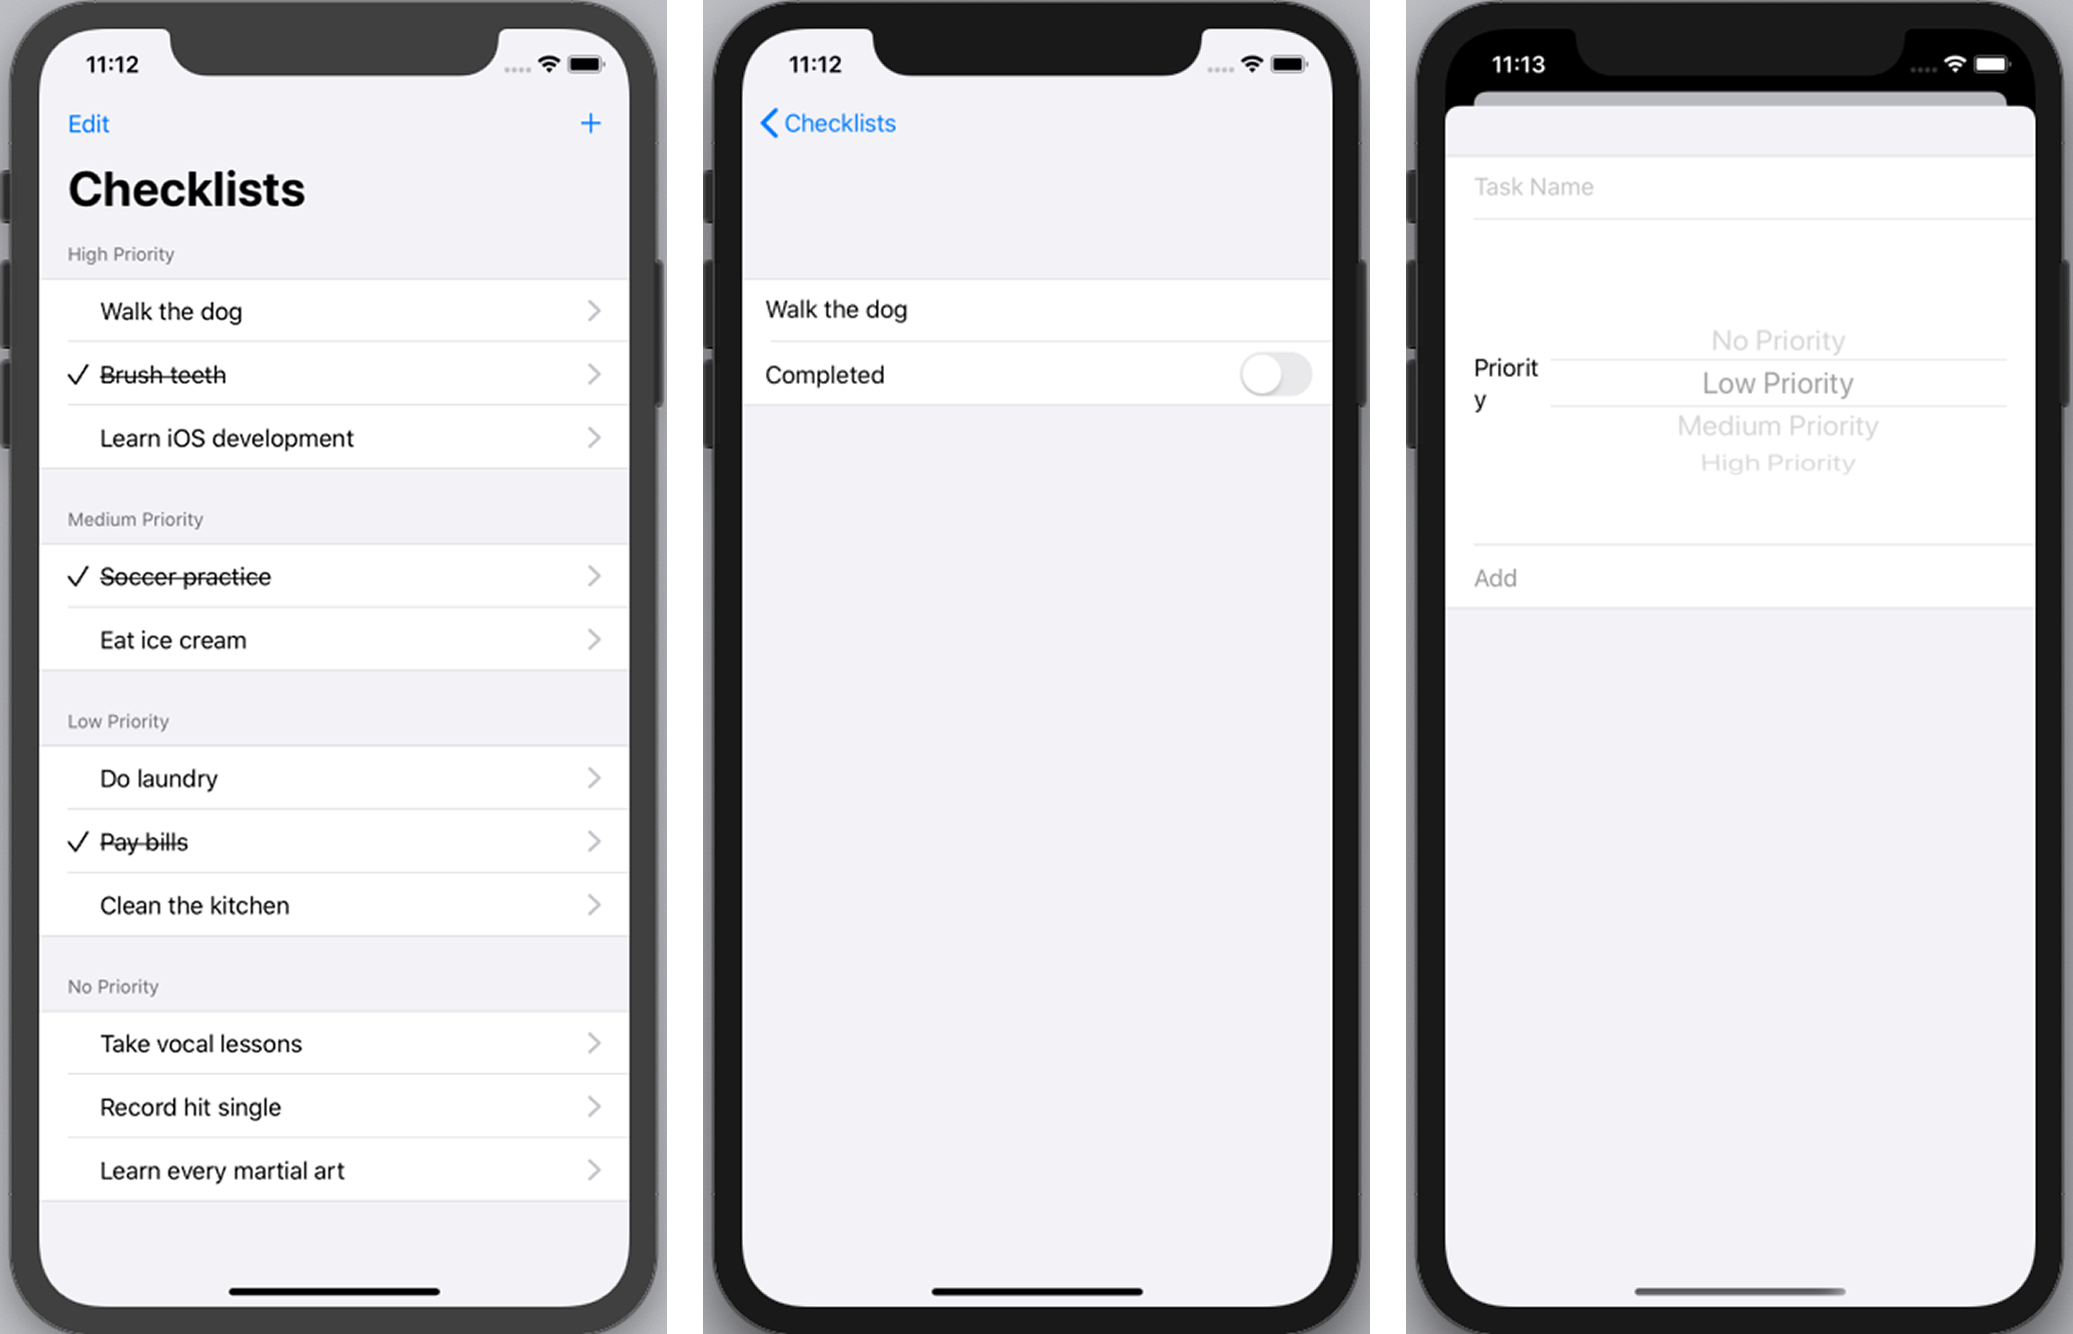 The finished Checklist app